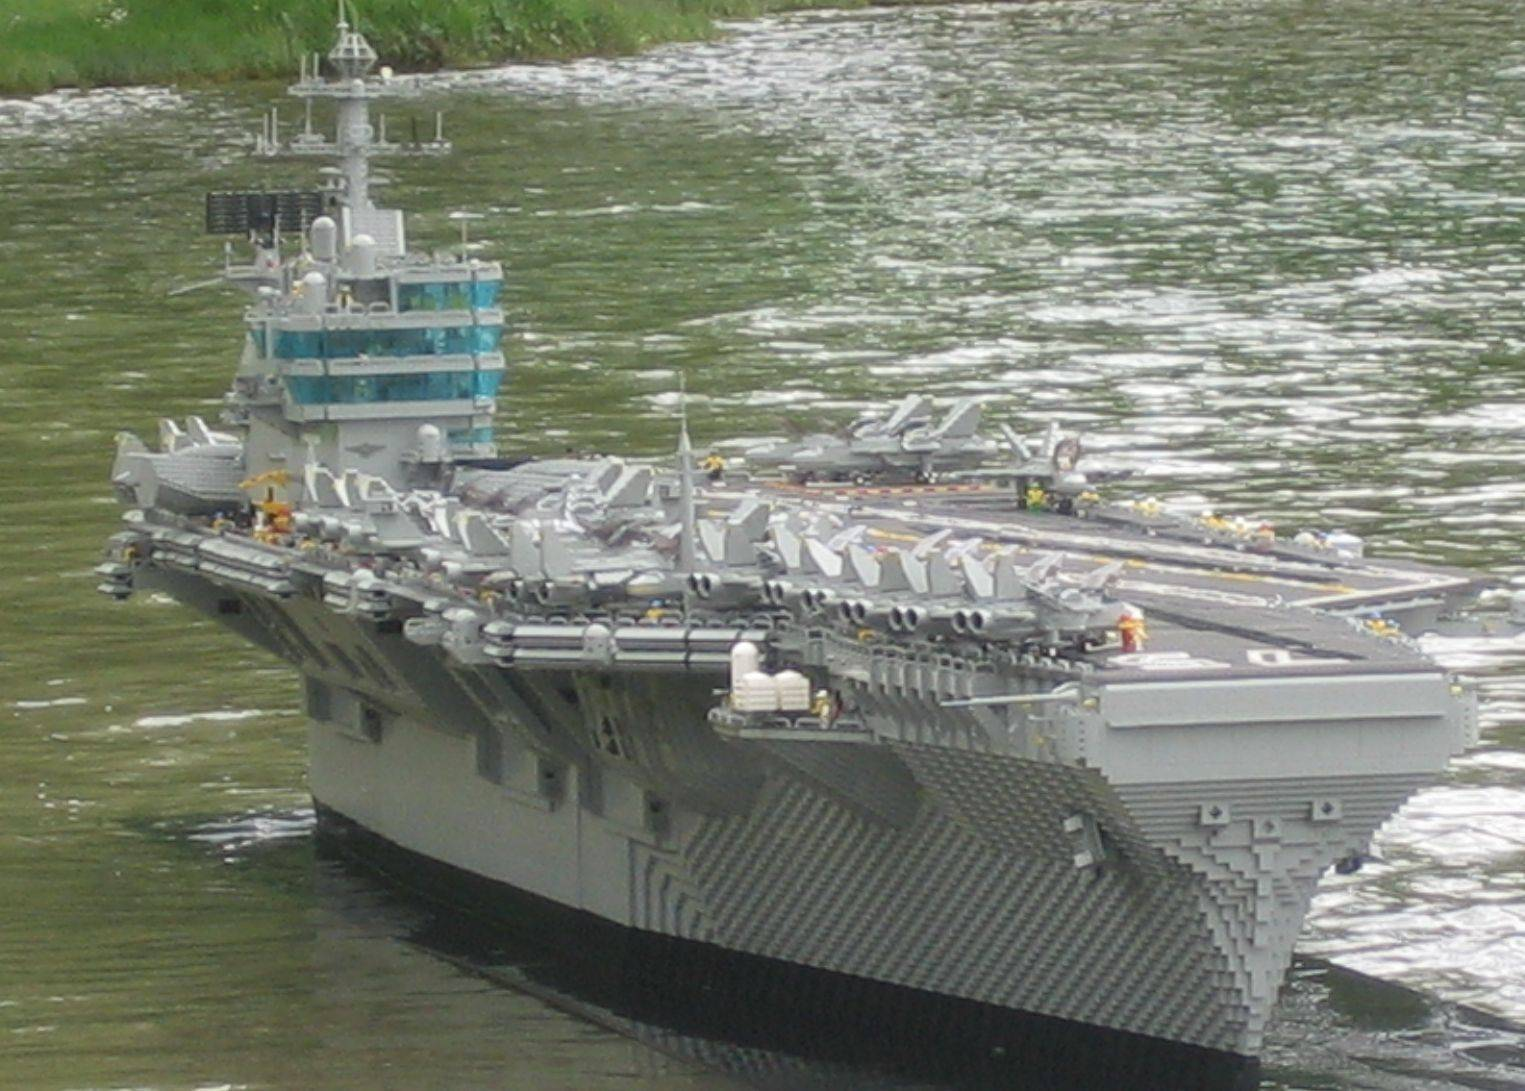 Aircraft carrier lego model in minifig size by Harry S. Truman